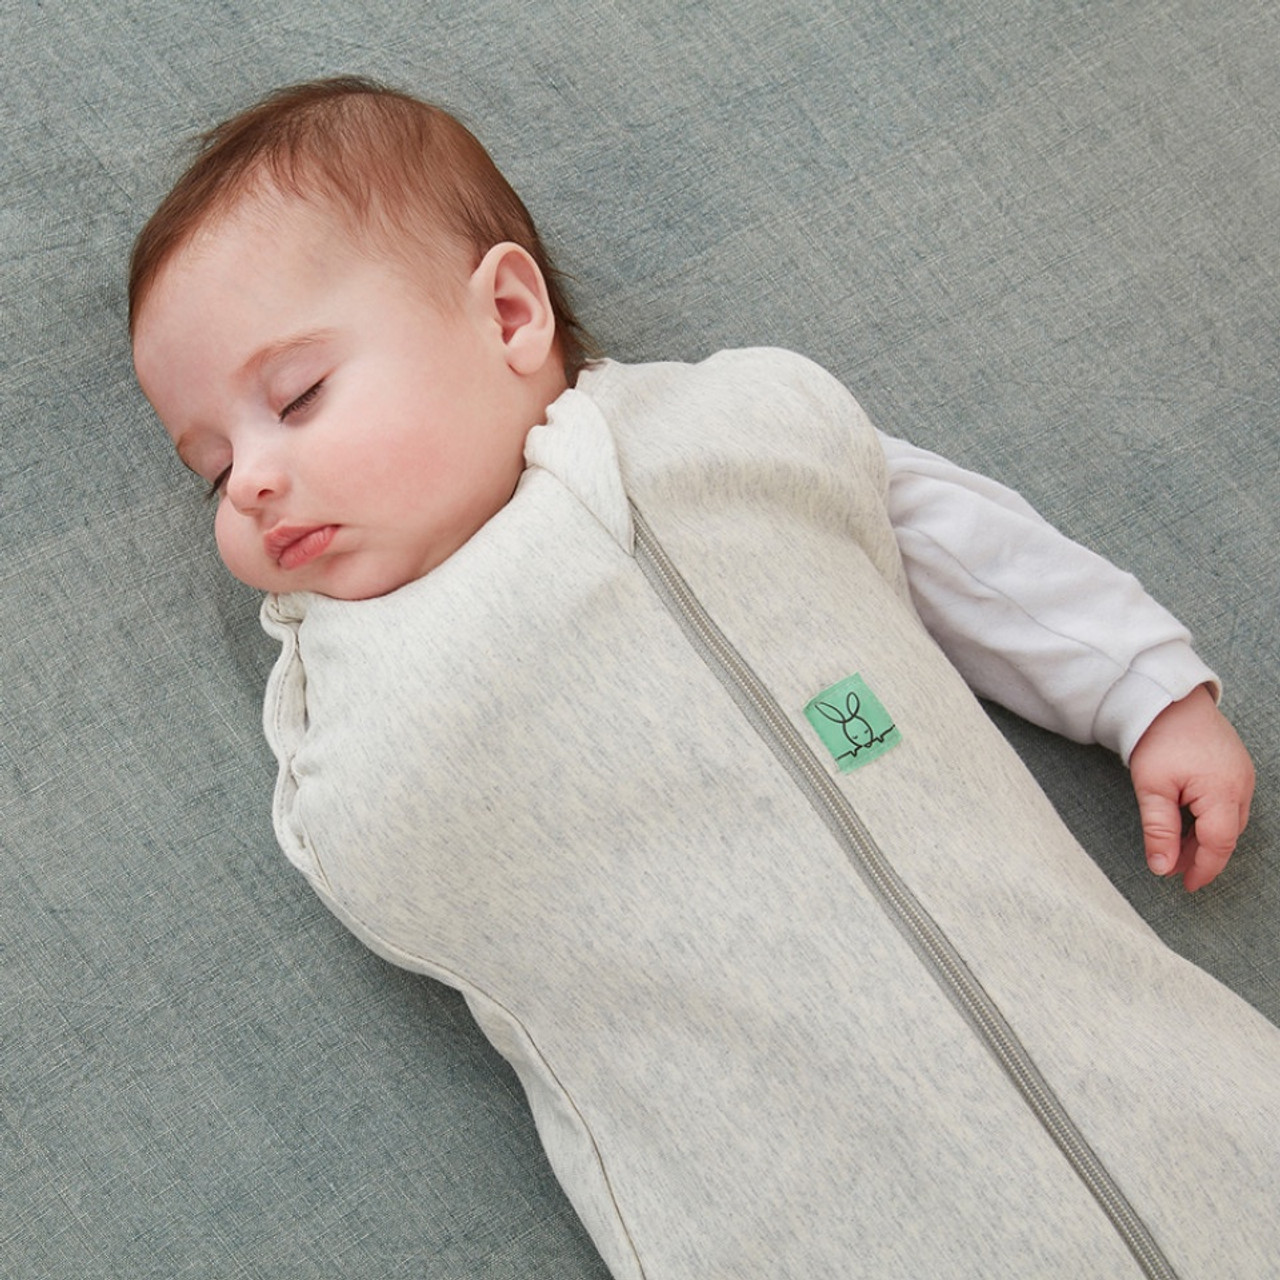 Ergopouch Cocoon Swaddle Bag 1.0 tog 6-12 Months at Baby Barn Discounts ErgoPouch cocoon 1.0 tog is an escape-proof swaddle which converts to a sleeping bag.